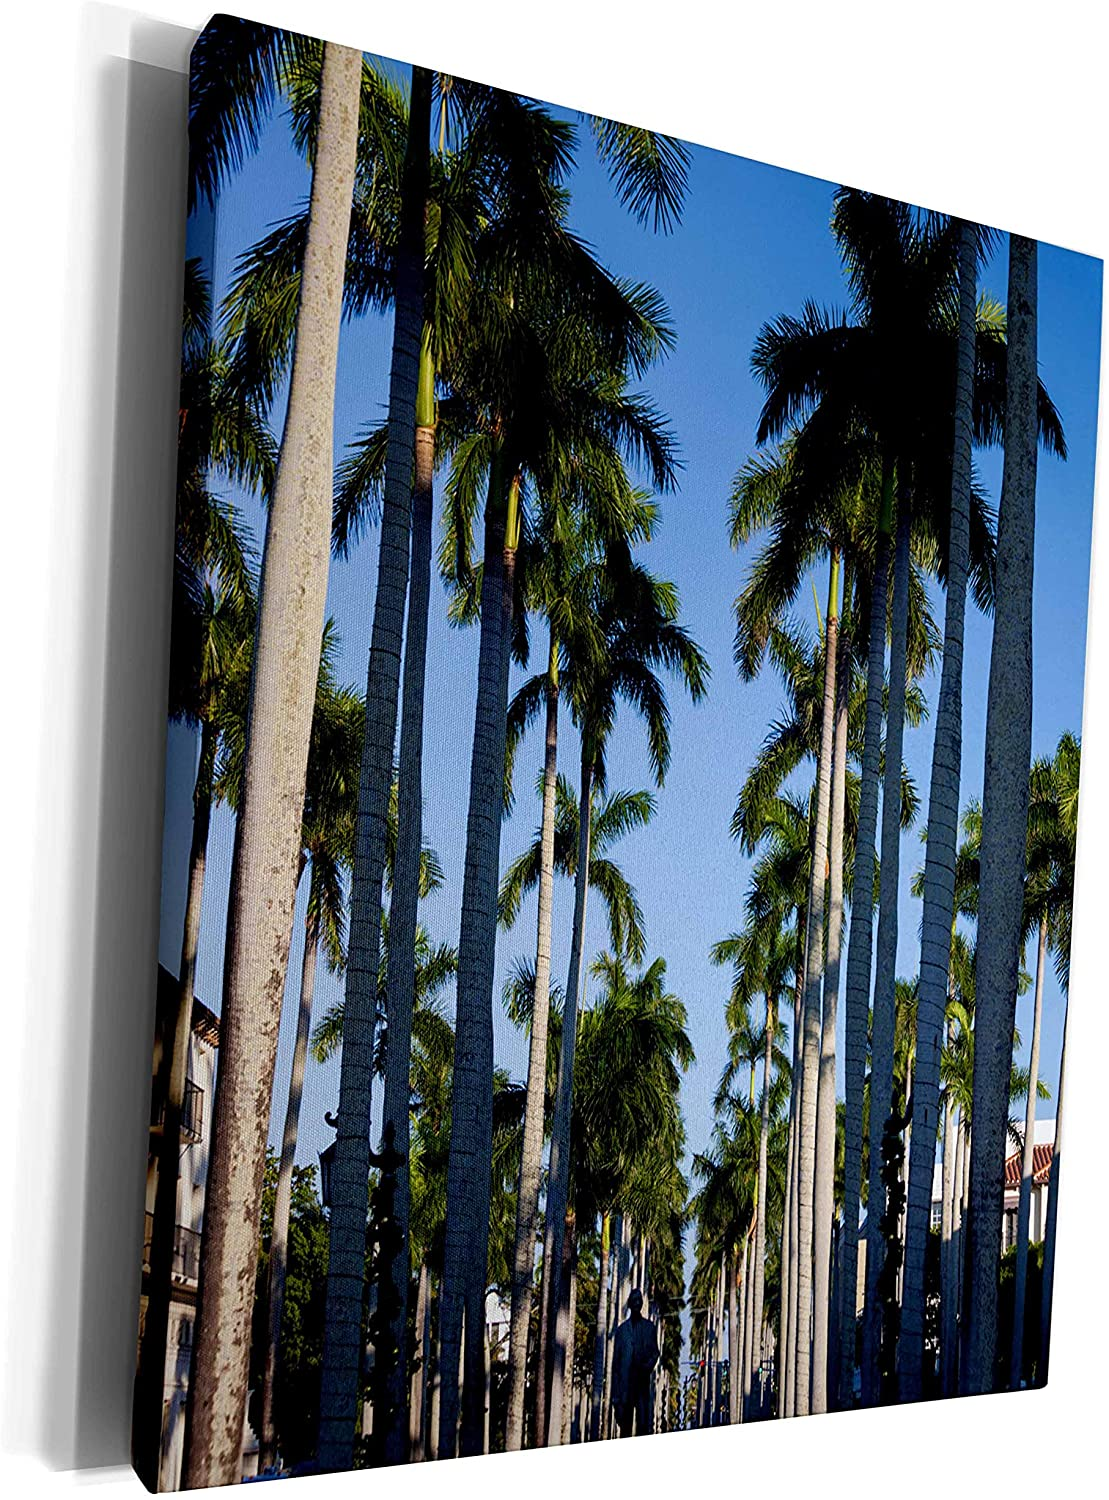 3dRose Danita Delimont - Trees - USA, Florida, Palm Beach, palms on Royal Palm Way. - Museum Grade Canvas Wrap (cw_205503_1)